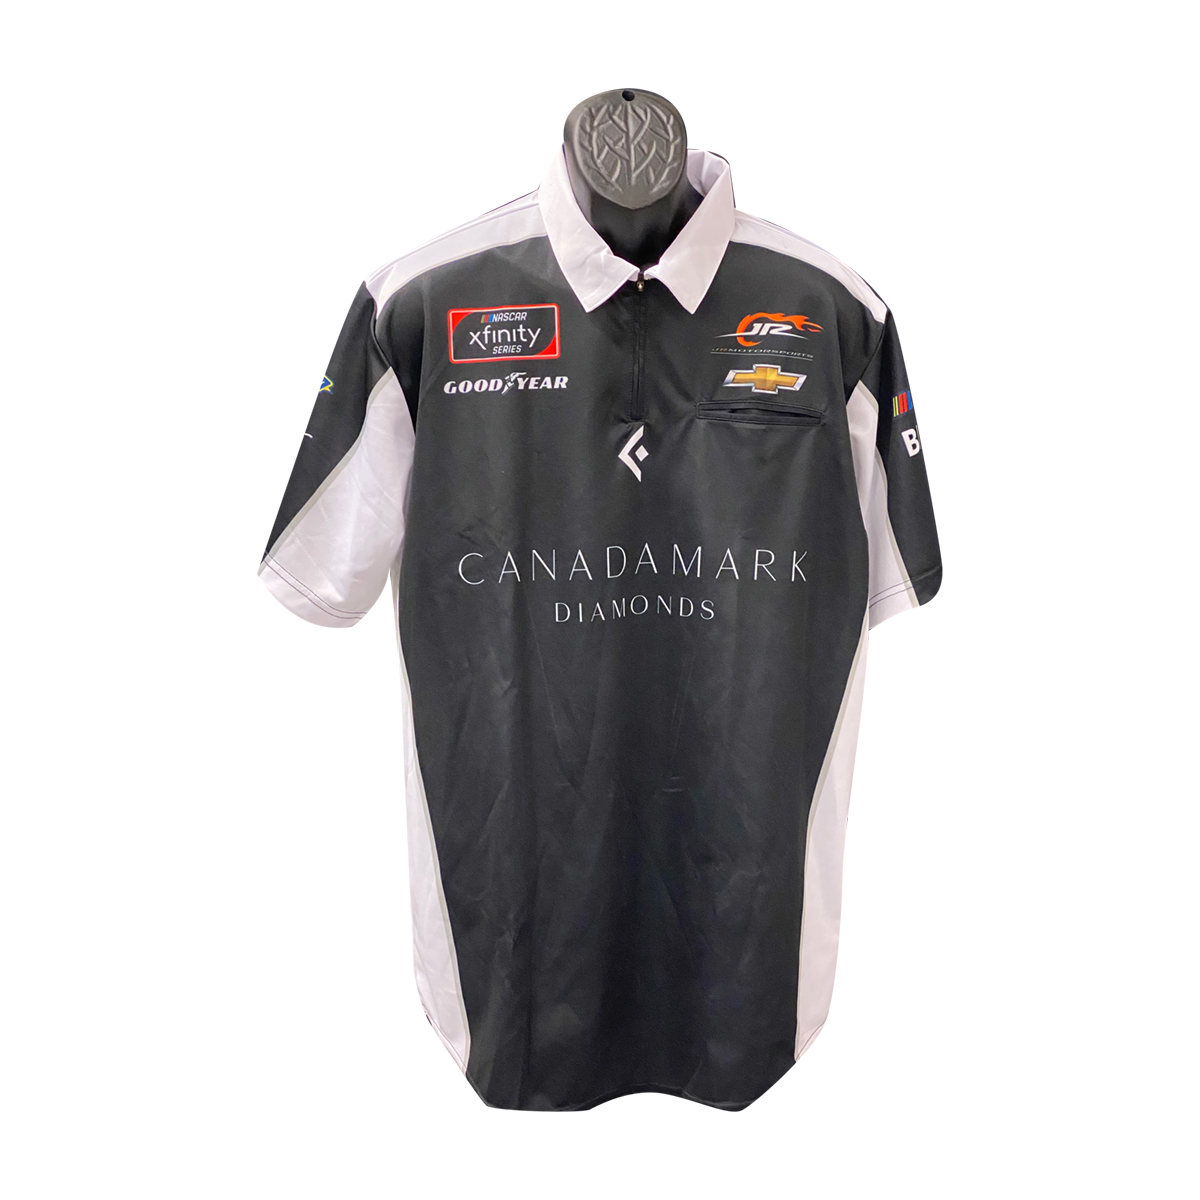 JRM Crew Shirt 2019 Black - Canadamark Diamonds #8